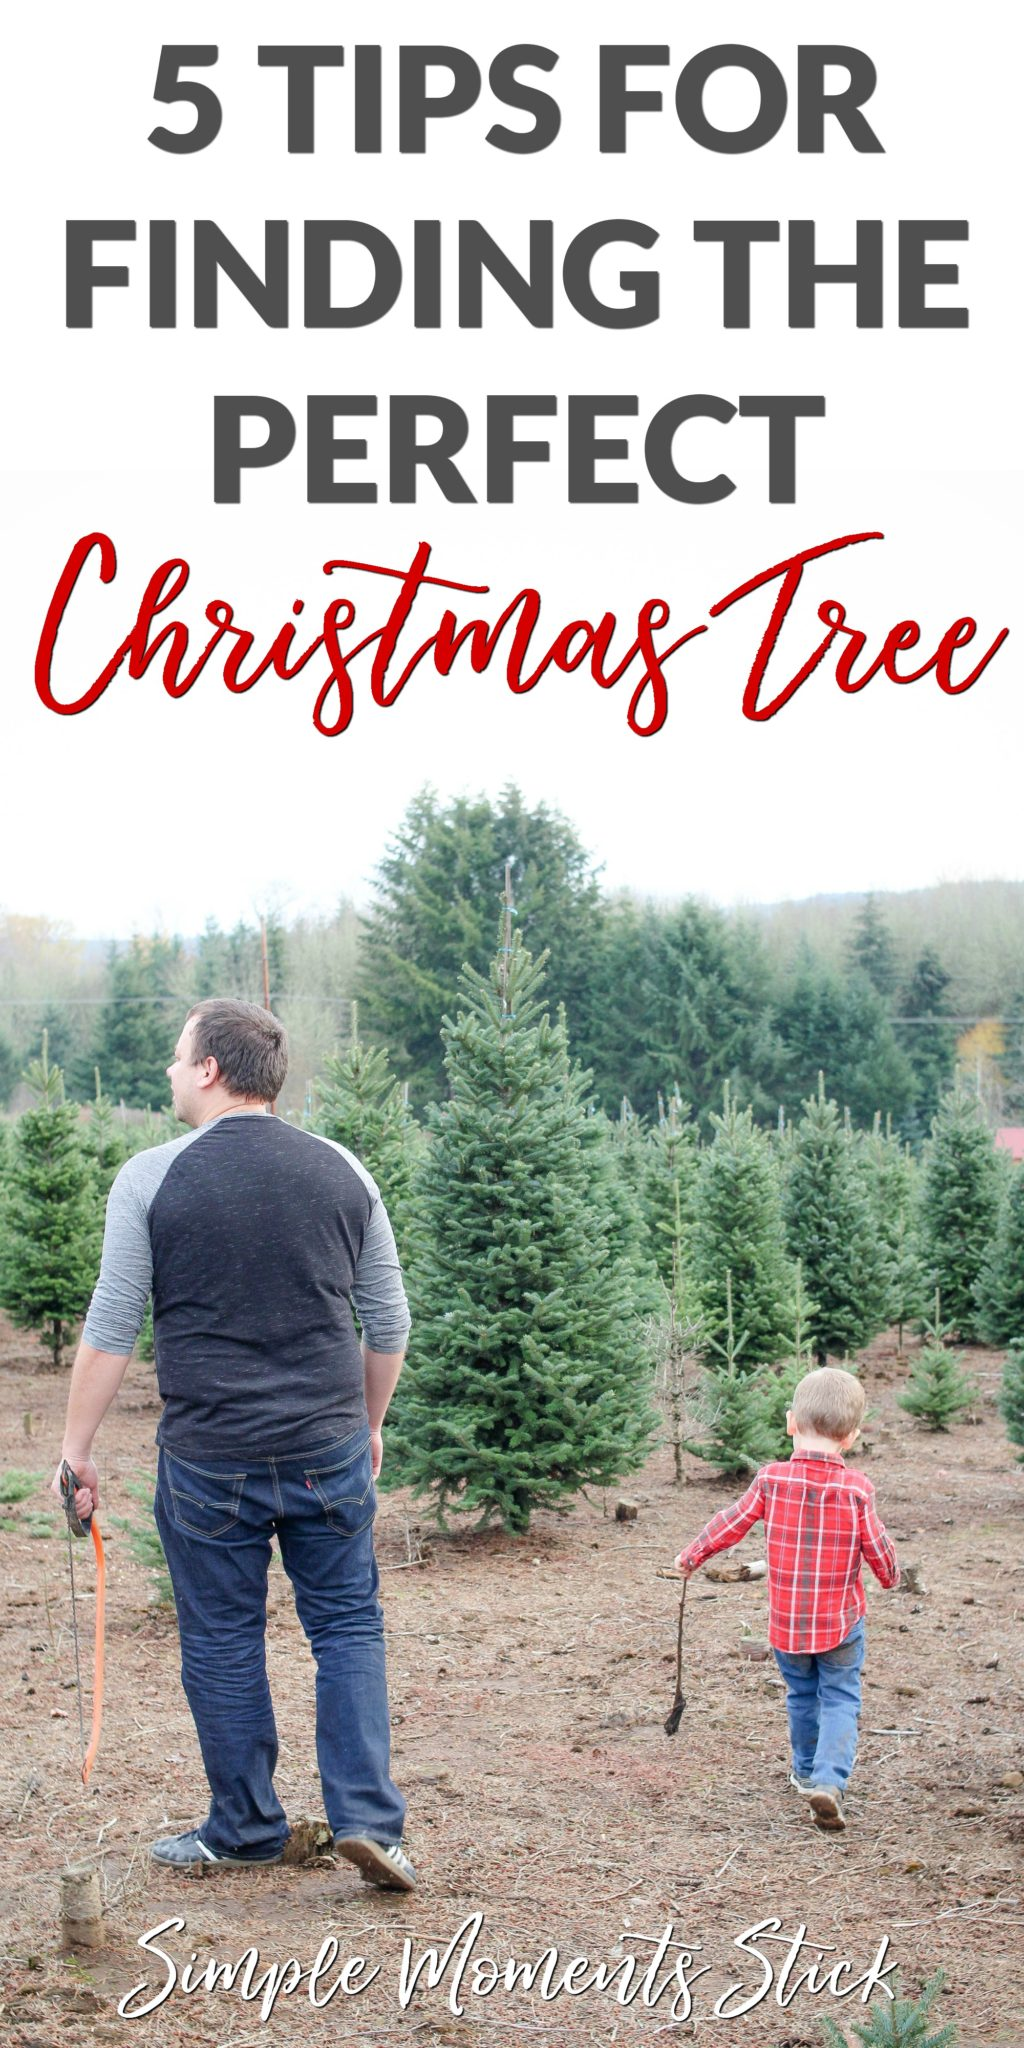 Out of all the types of Christmas trees, how do you find the best?